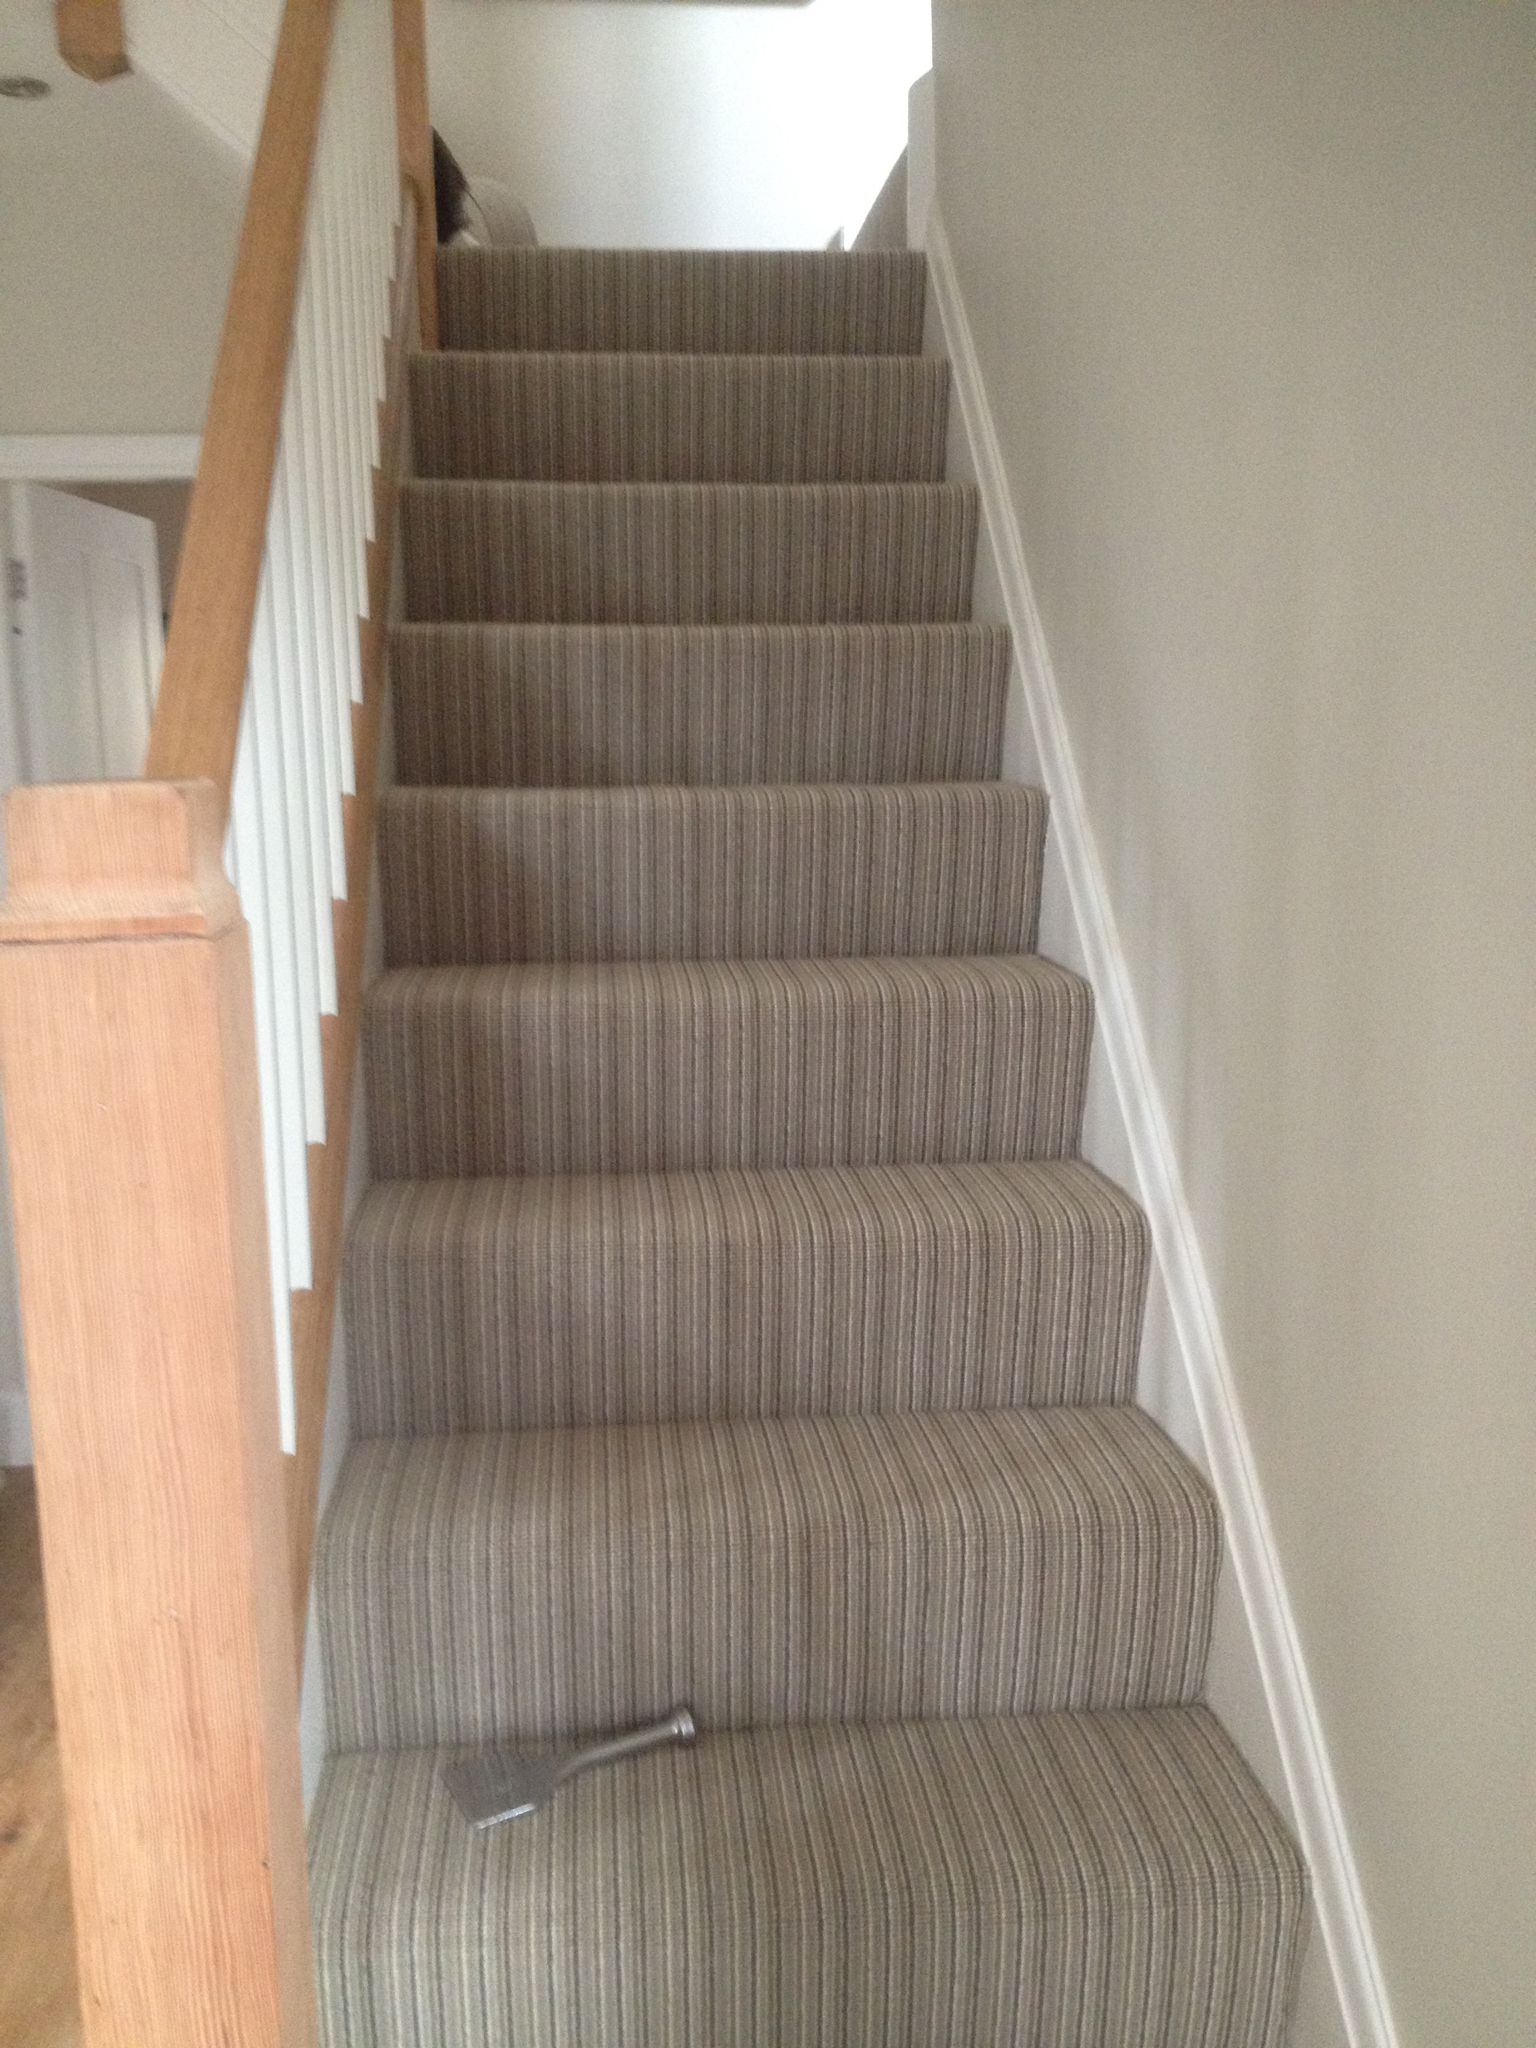 Ulster Carpets Wellington Stripe Carpet Stairs Hallway